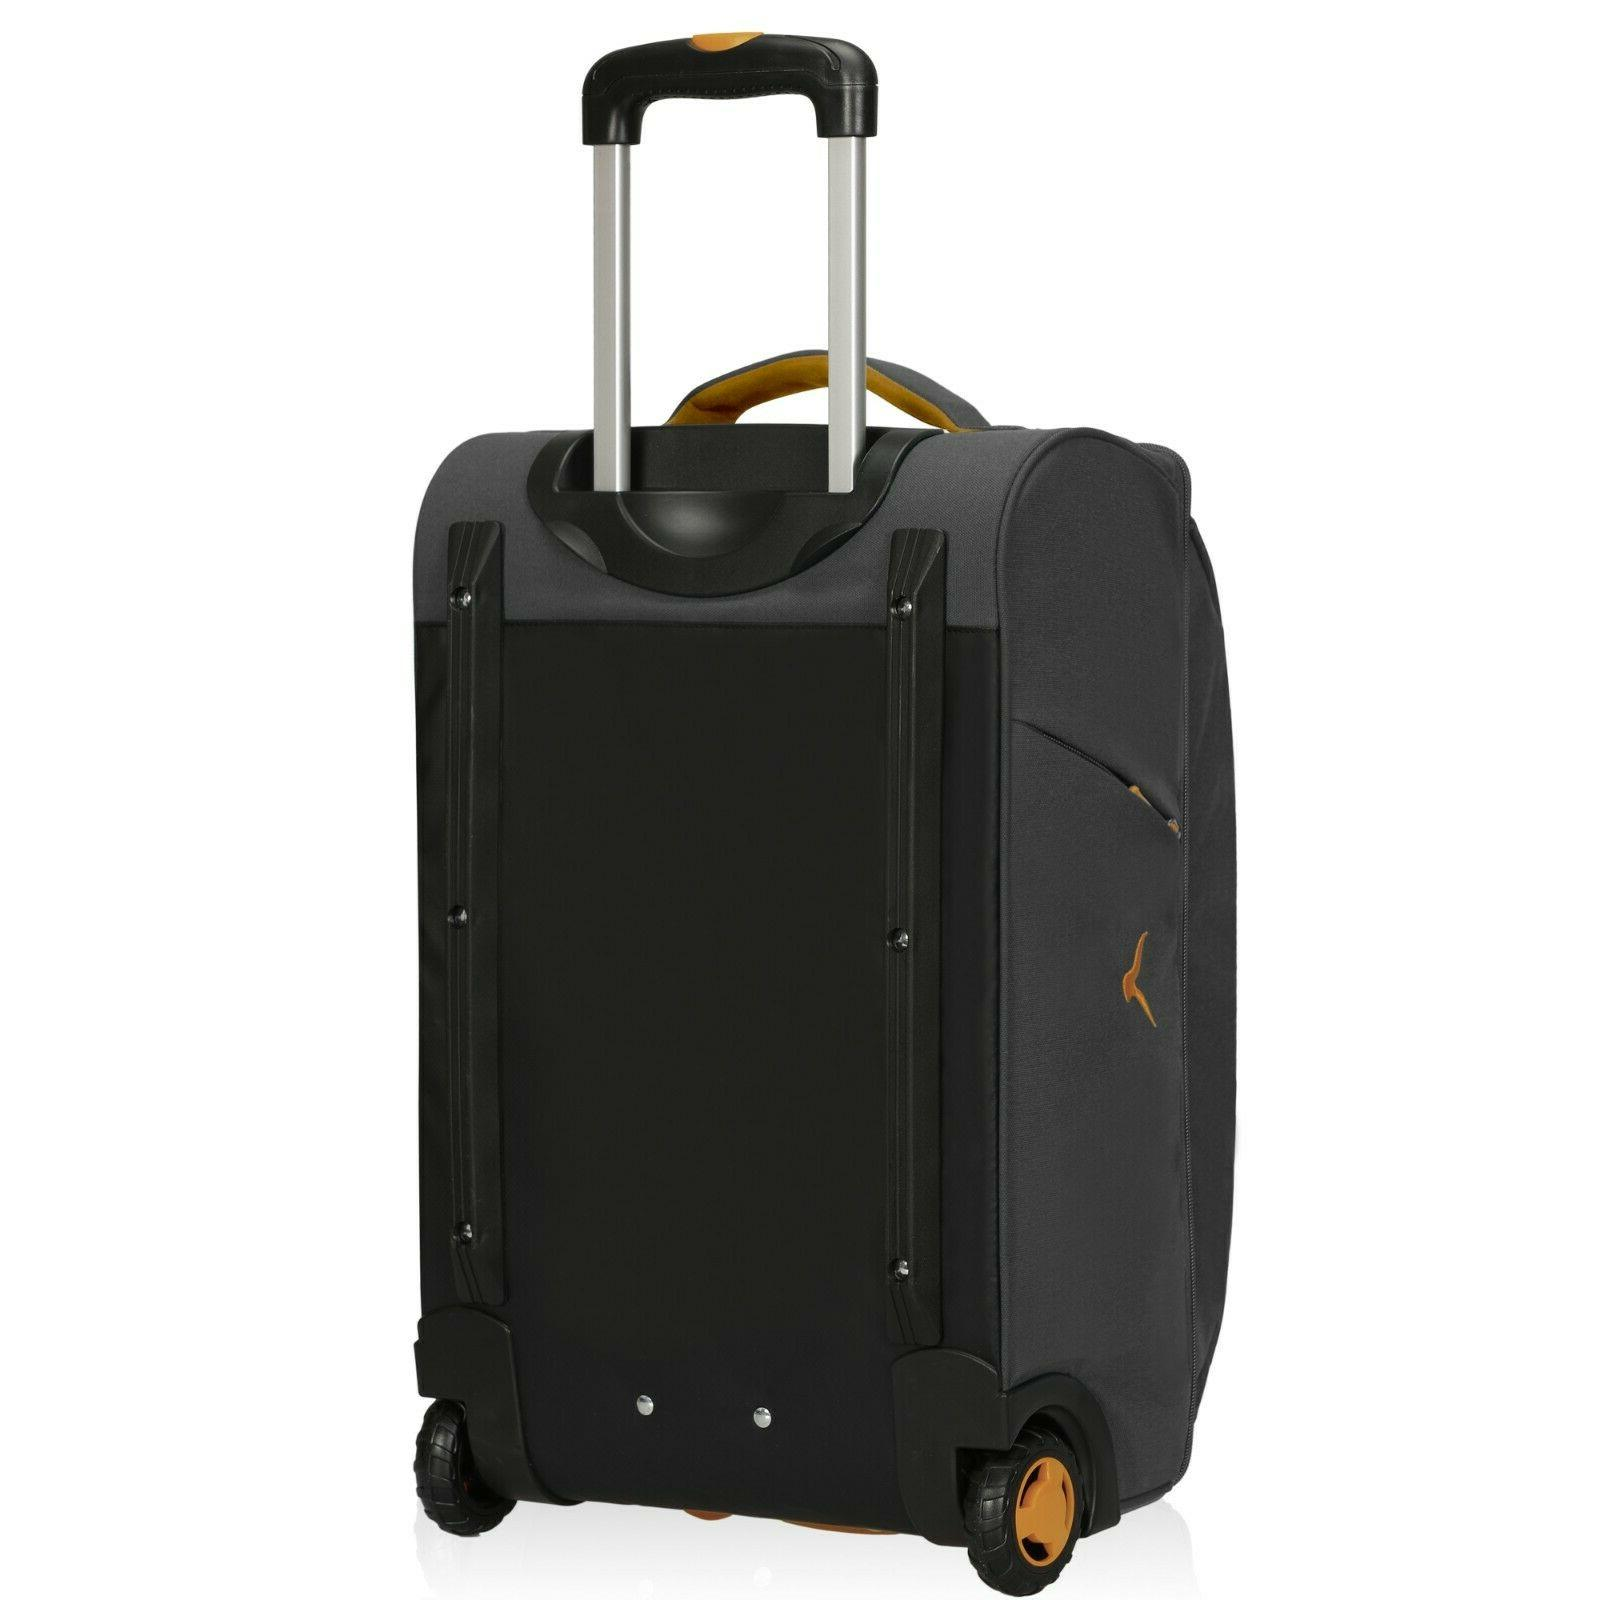 Hynes Luggage 21'' Carry-On